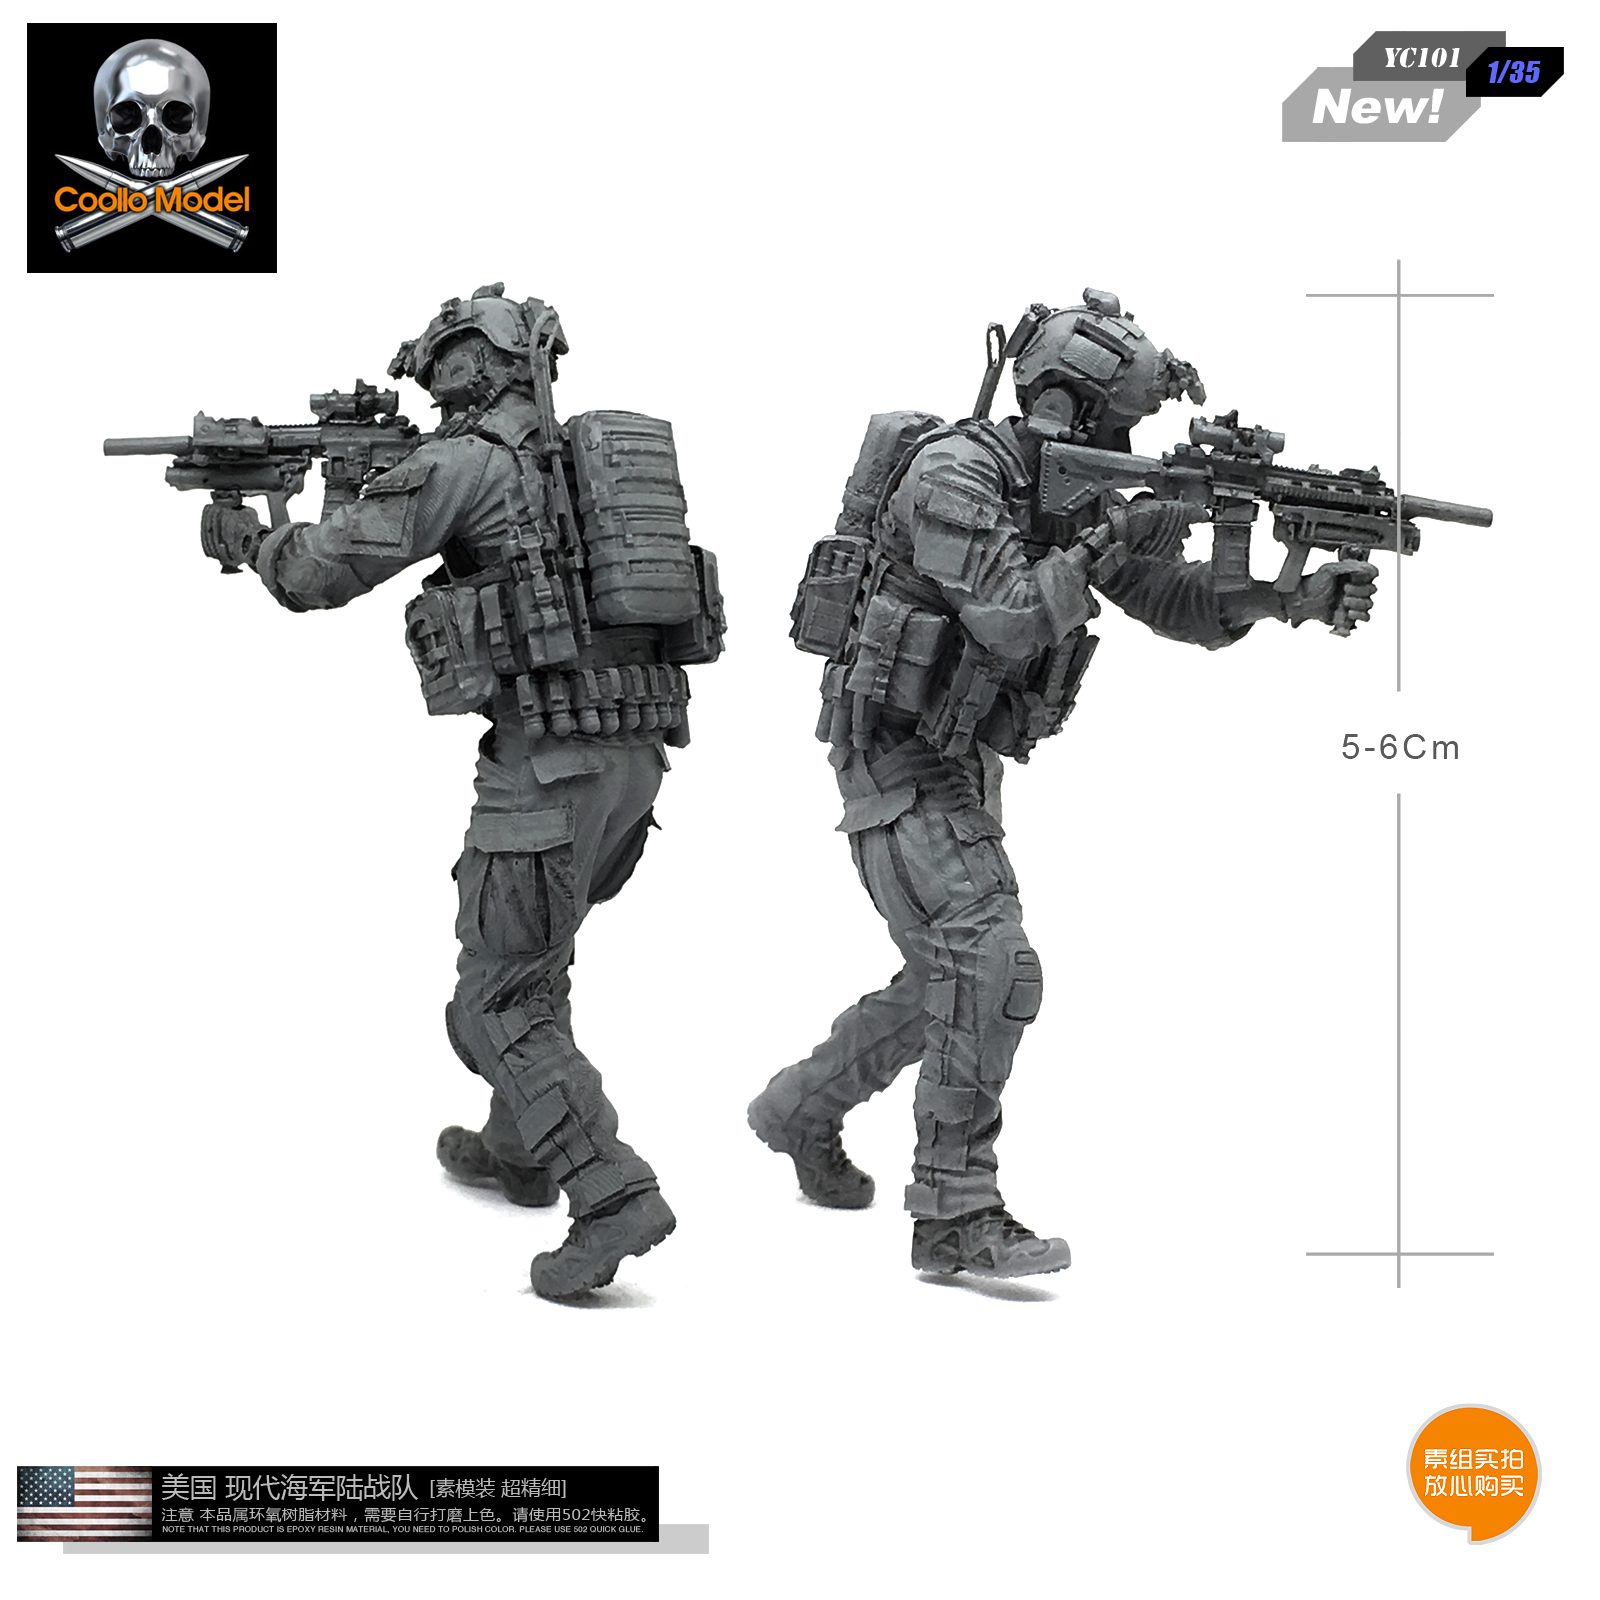 1/35 Resin Soldier Model Of Modern American Elite Special Forces Model Kits Unmounted YC101